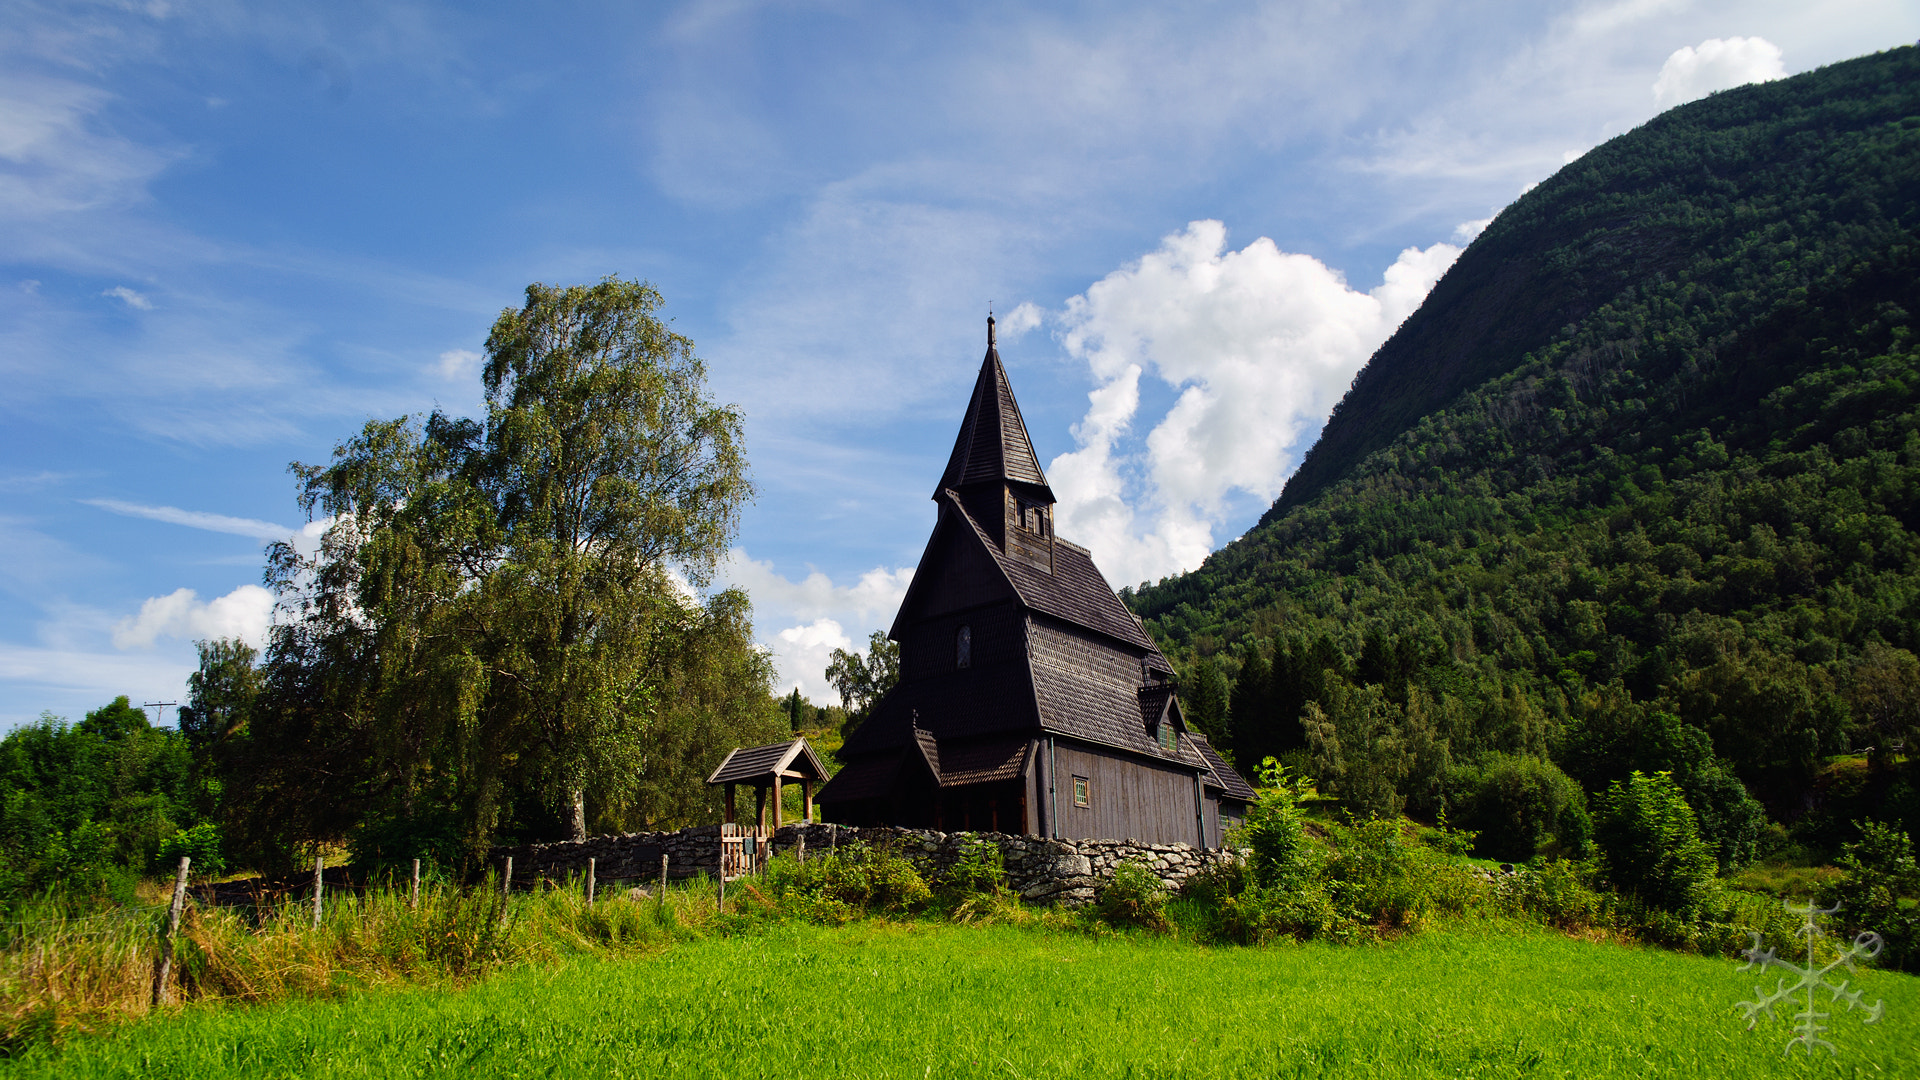 Photograph Urnes Stave Church by Stian Rekdal on 500px